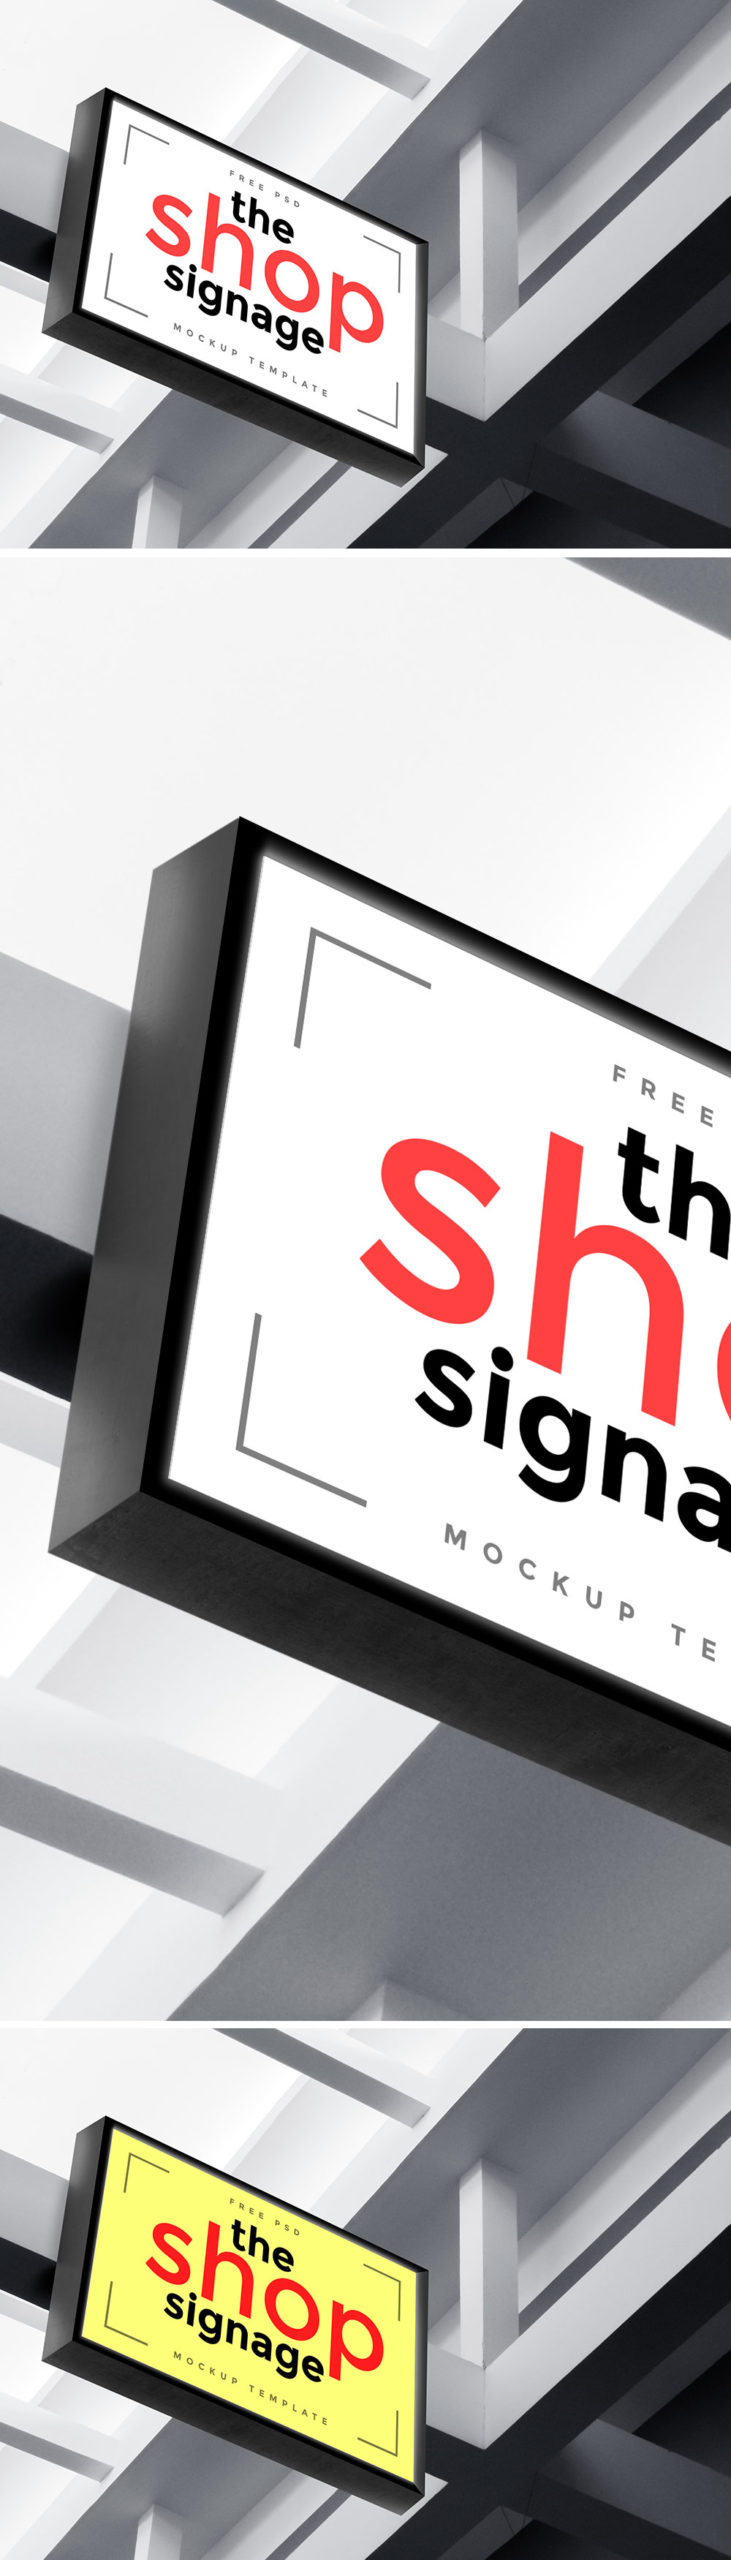 White Color Shop Signage Board Mockup